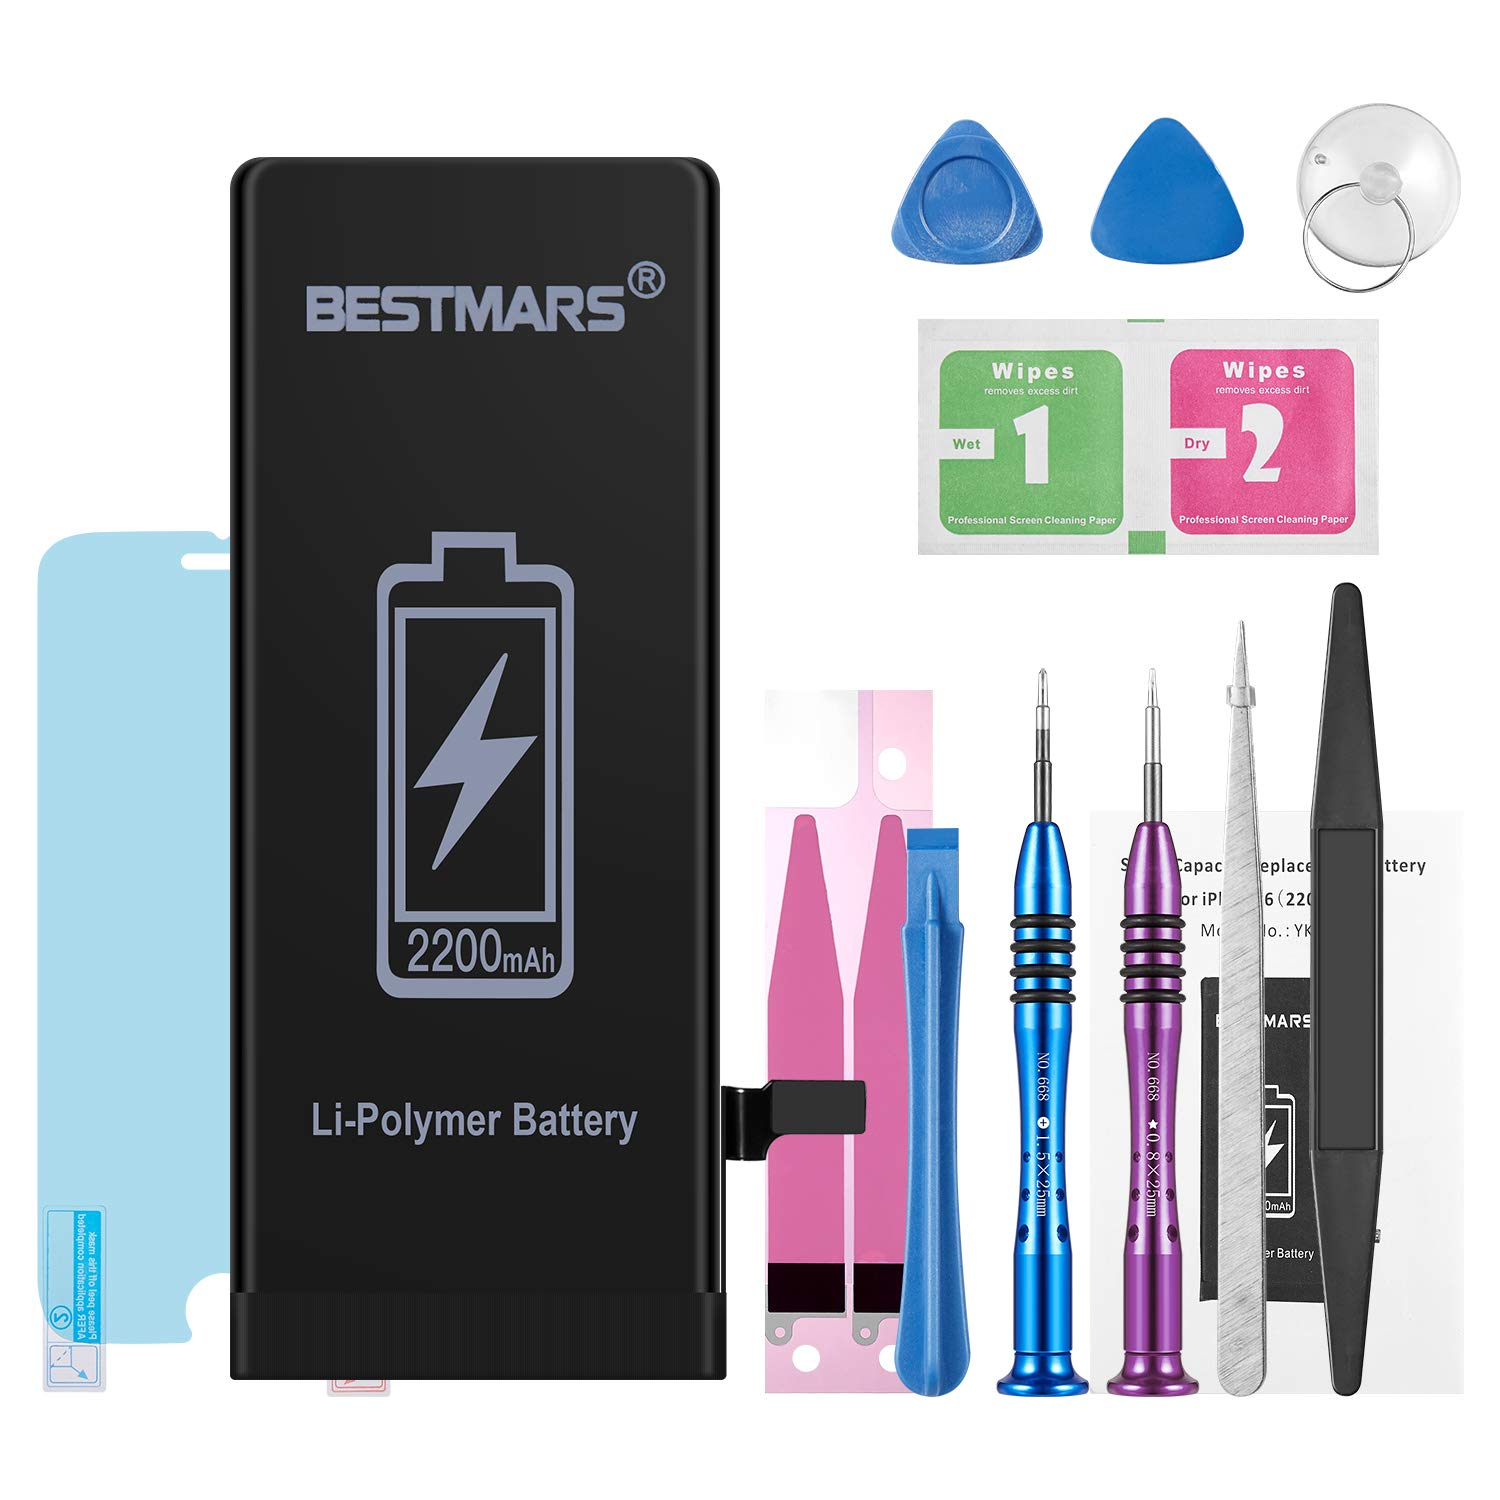 BESTMARS Battery Compatible for iPhone 6, 2200mAh High Capacity 0 Cycle Li-ion Replacement Battery with Complete Repair Tool Kit, Adhesive Strip, Instructions and Screen Protector - 2 Year Warranty by BESTMARS